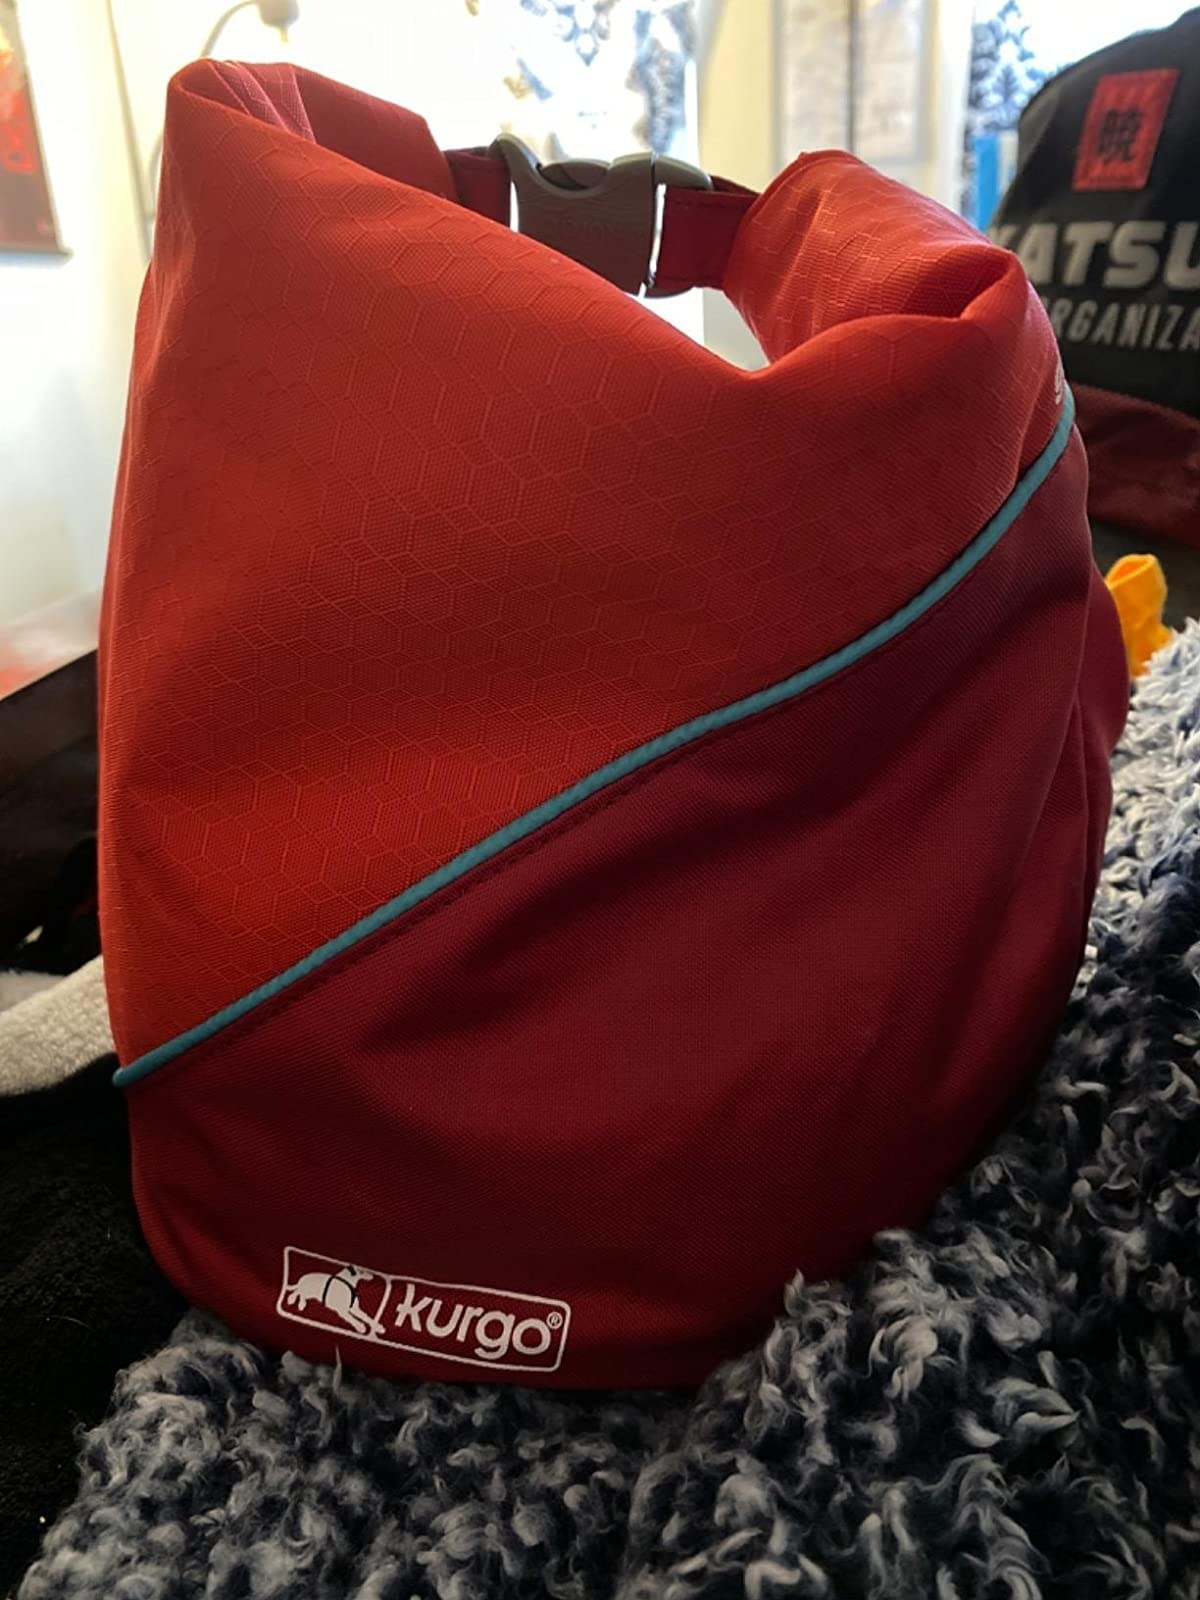 The bag, which has a nylon outer shell